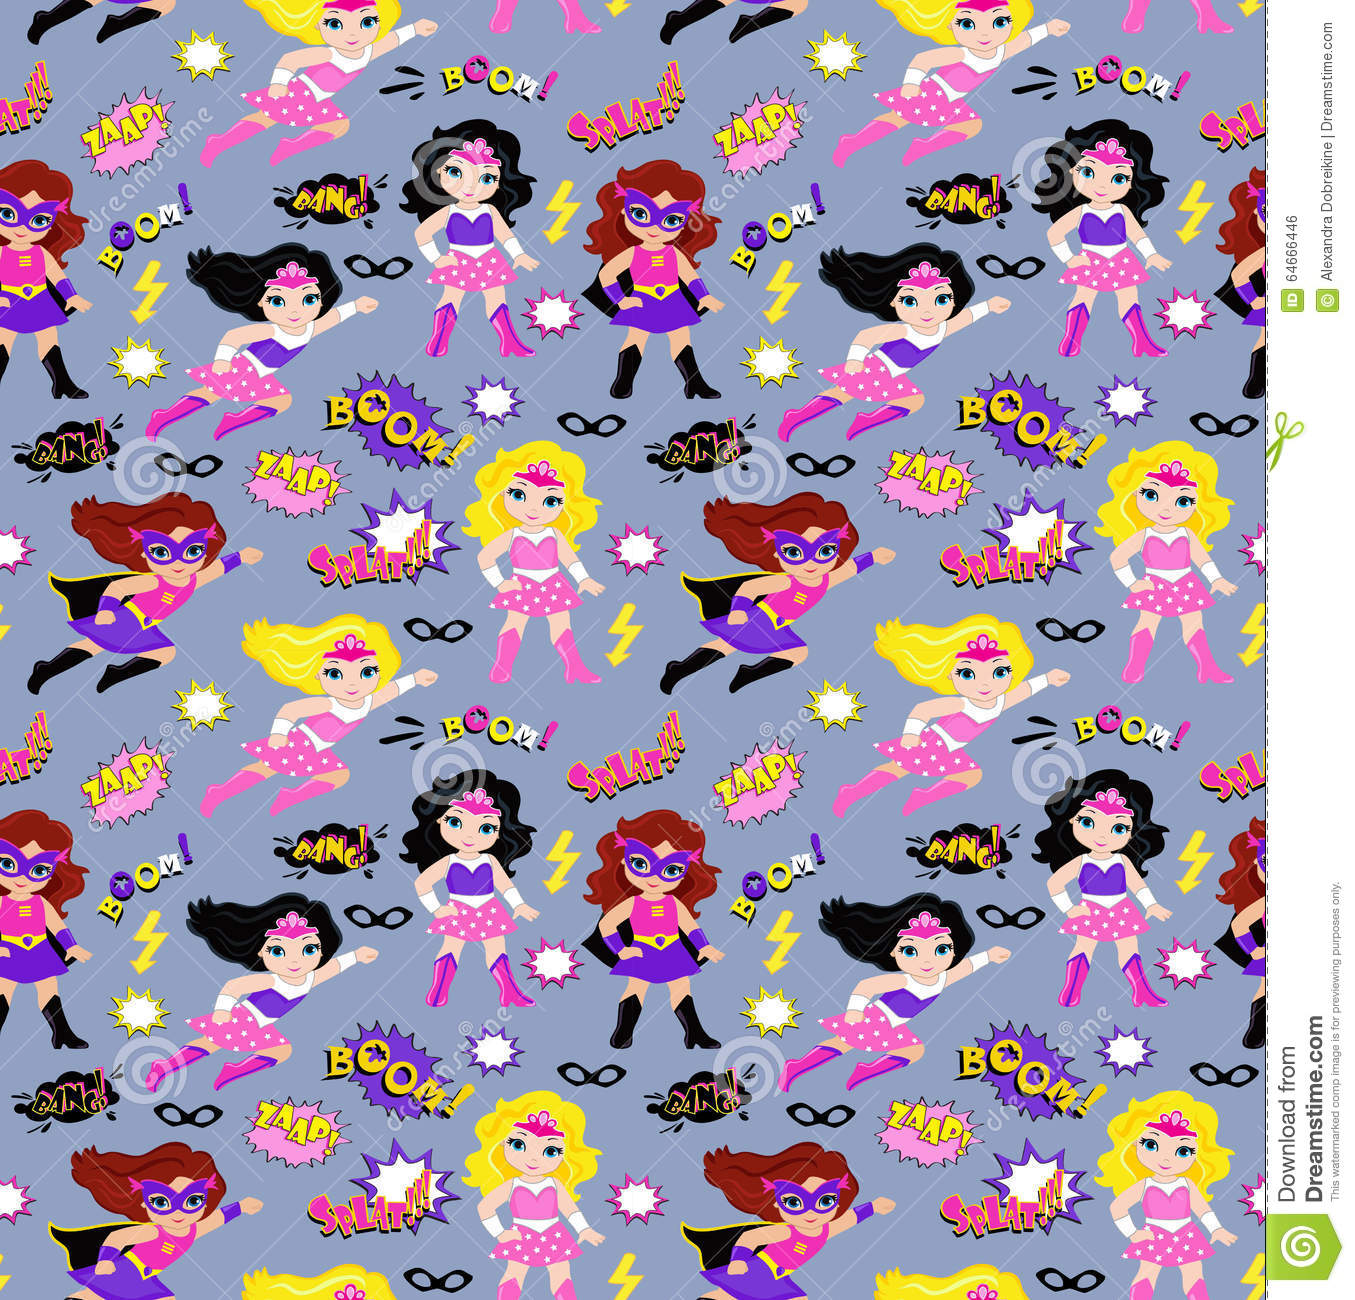 Cute Girly Pattern Wallpapers Seamless Superhero Girls Background Pattern In Vector